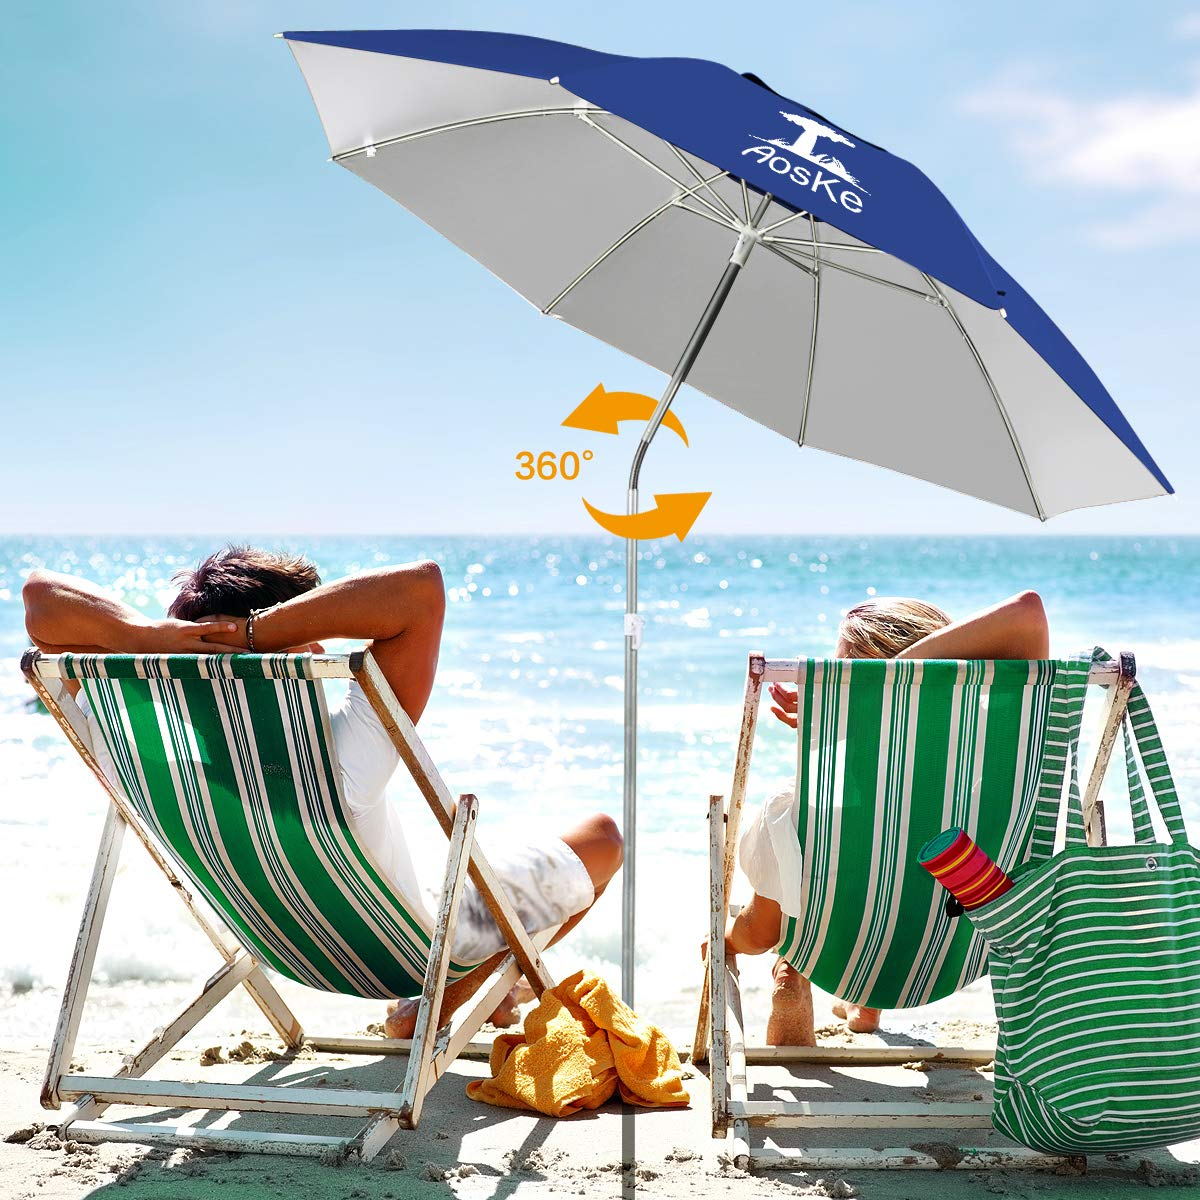 AosKe Patio Umbrella Beach Umbrella Sports Umbrella Portable Sun Shade Umbrella Inclined Heat Insulation Antiultraviolet SPF 50+